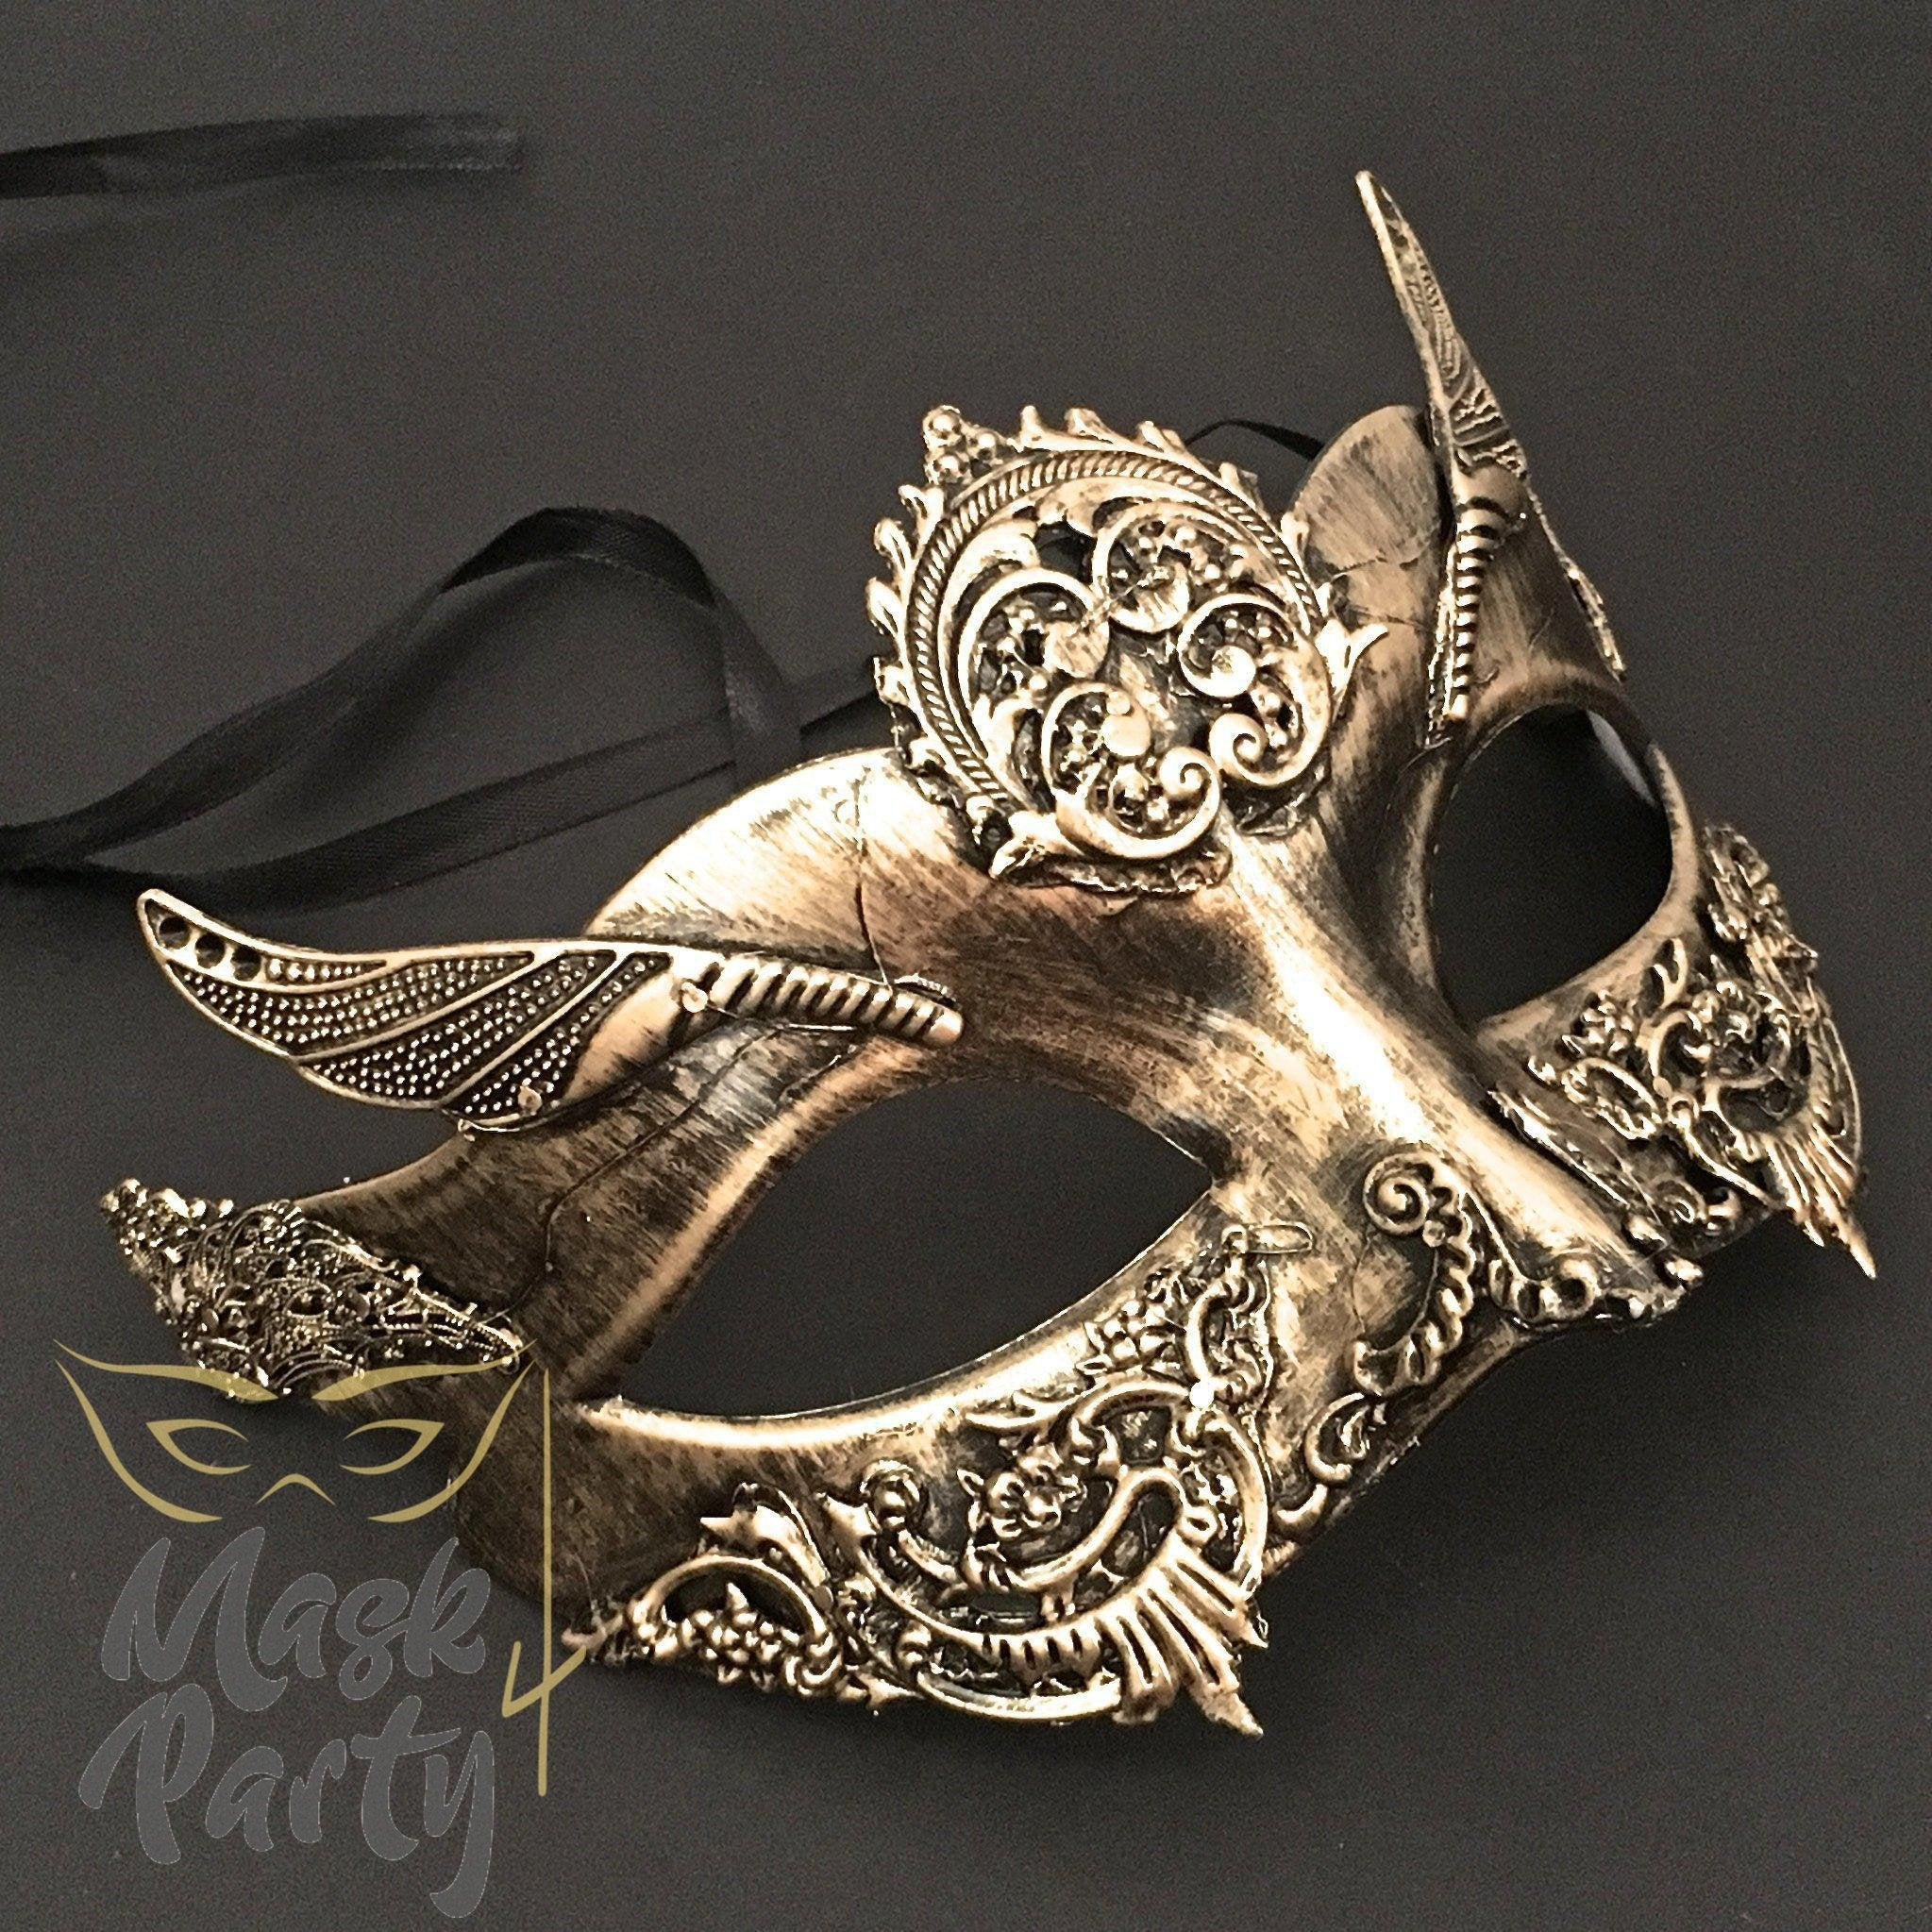 Steampunk Mask - Bird Wing - Gold/Black - Mask4Party